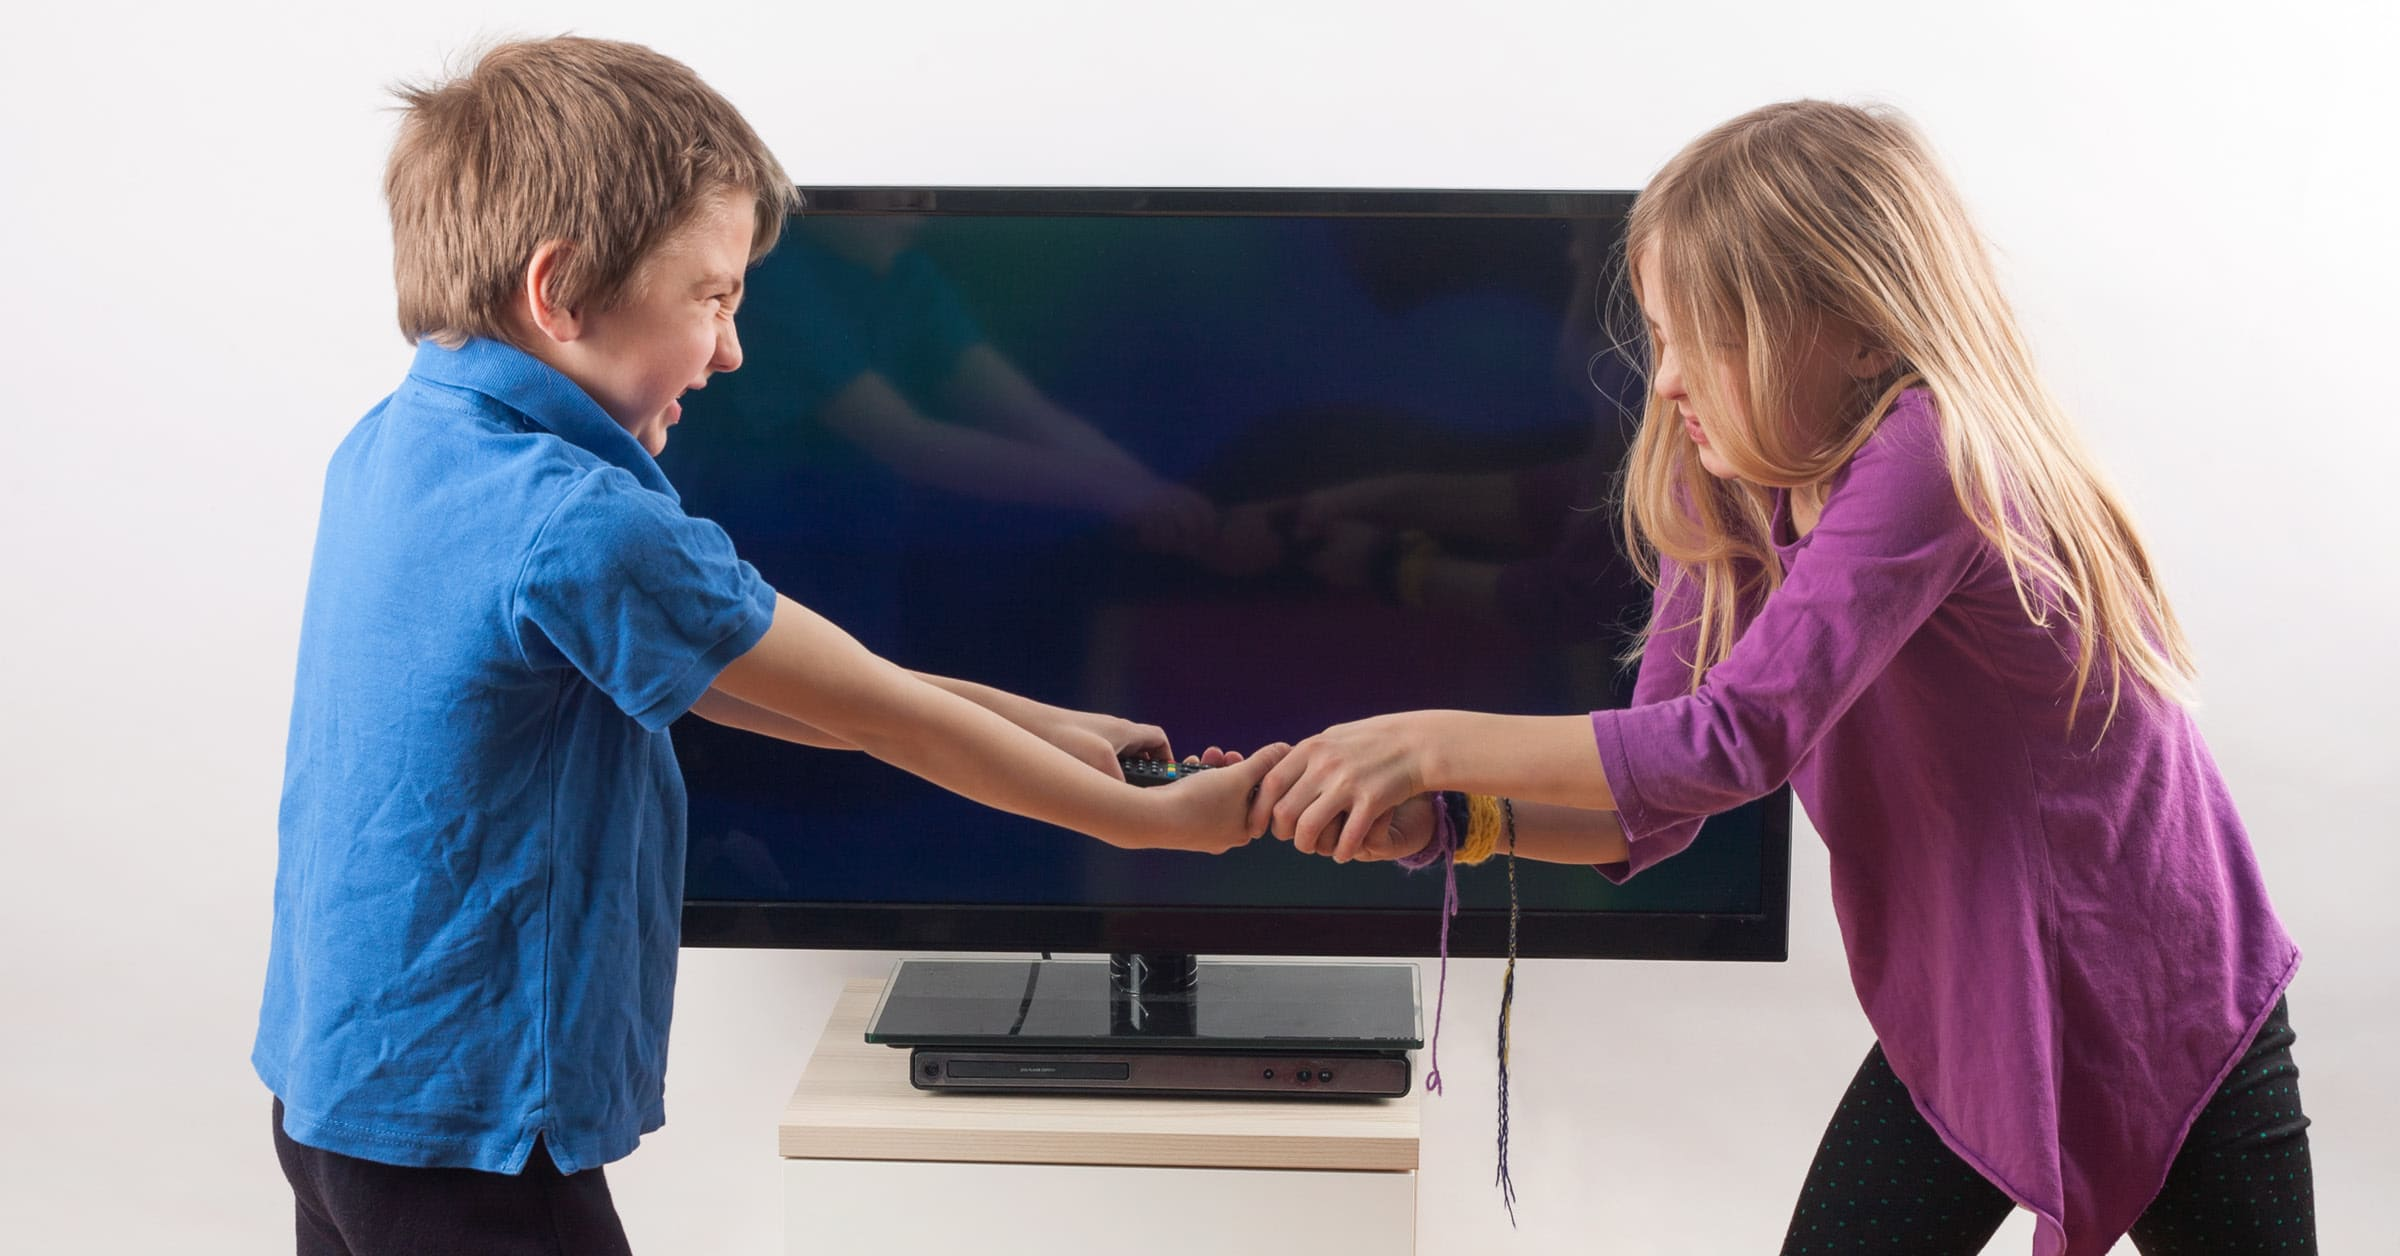 6 Smart Ways to Get Your Kids to Stop Fighting